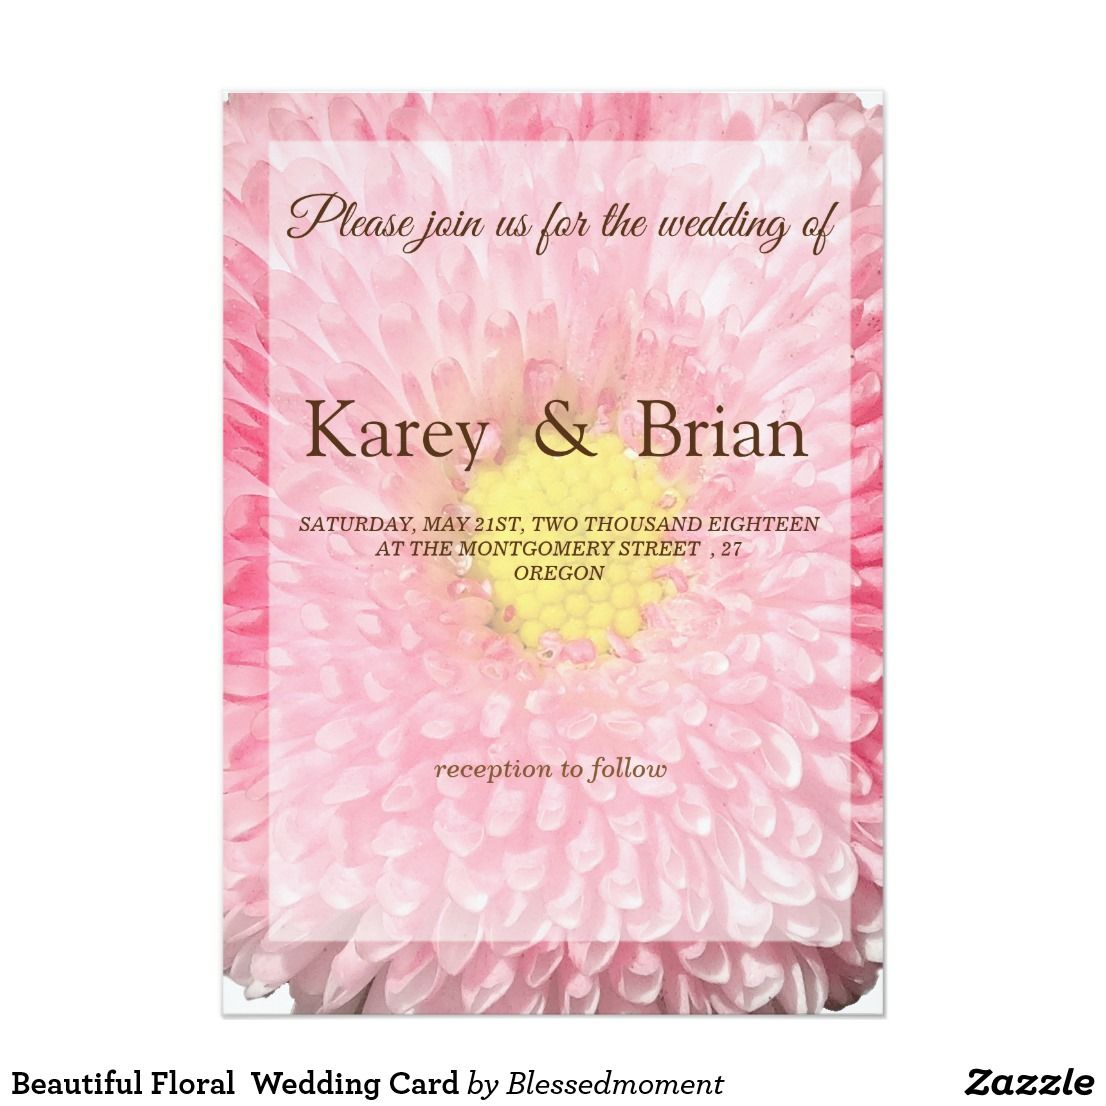 Beautiful Floral Wedding Card | Awesome Wedding & Anniversary sets ...